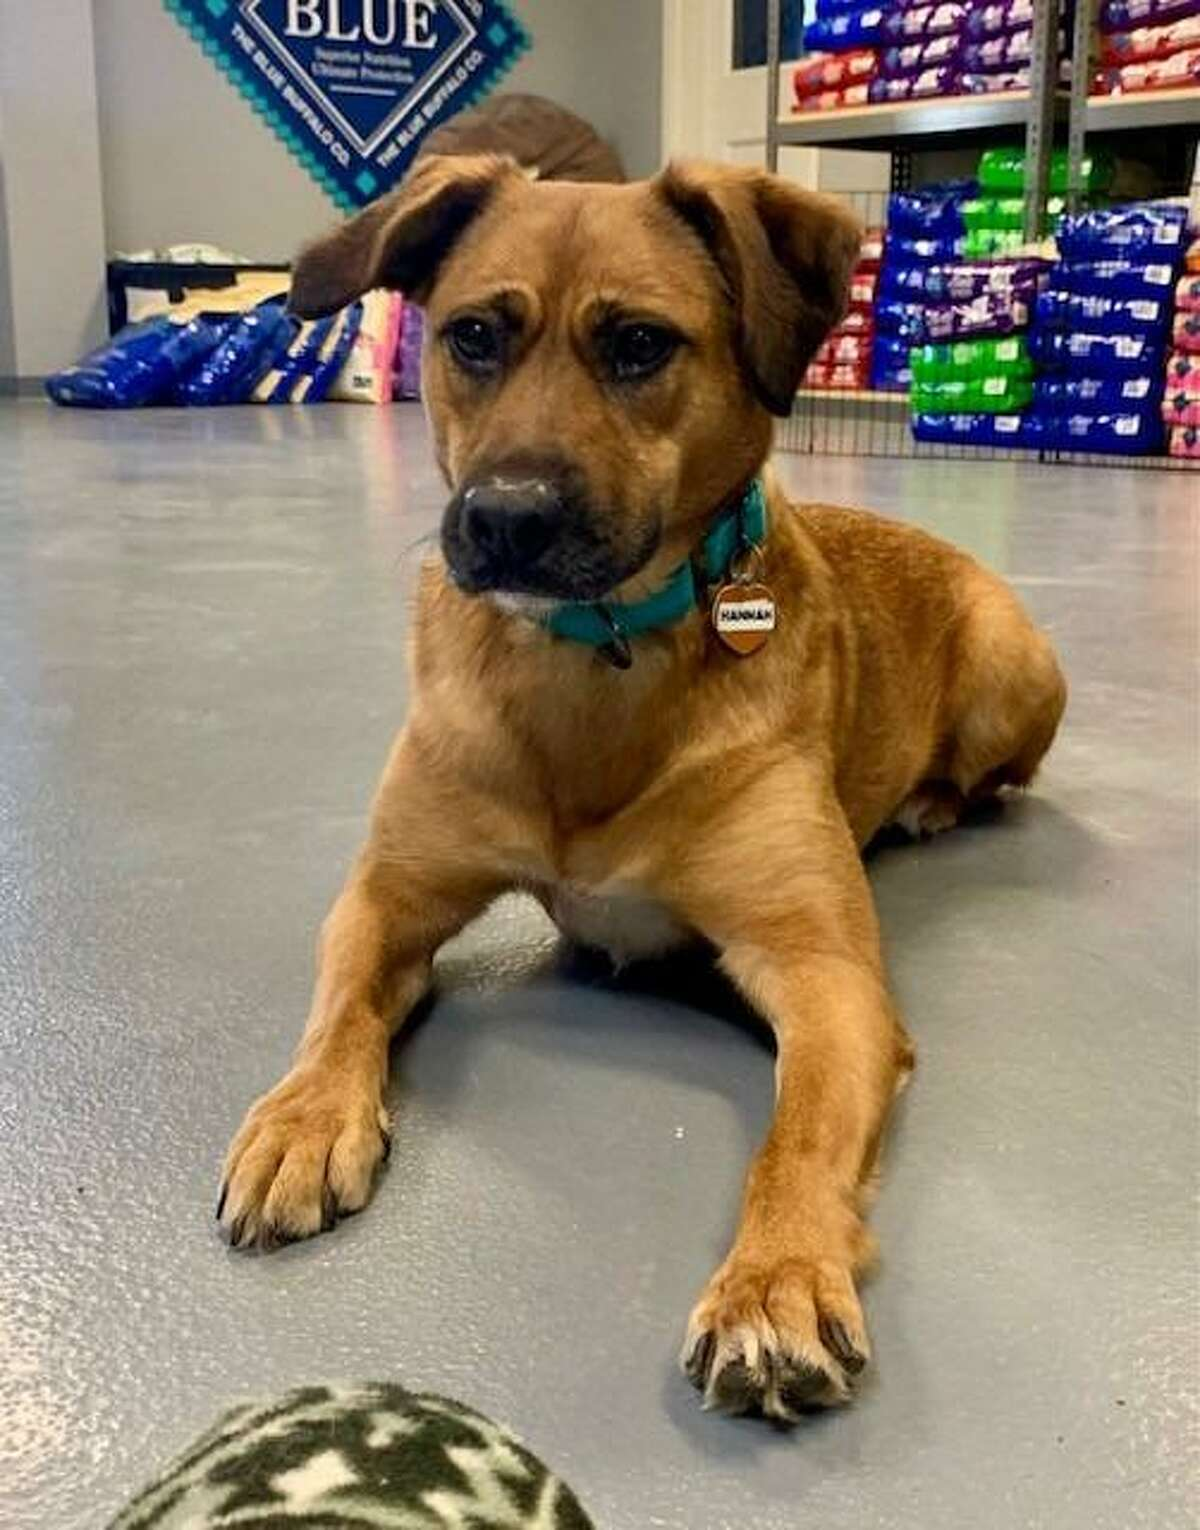 Hannah needs a home with a fenced in yard, a quiet environment, and a dog companion. She is at the ROAR Donofrio Animal Shelter in Ridgefield, and can be met via an appointment by calling the shelter at (203) 438-0158.